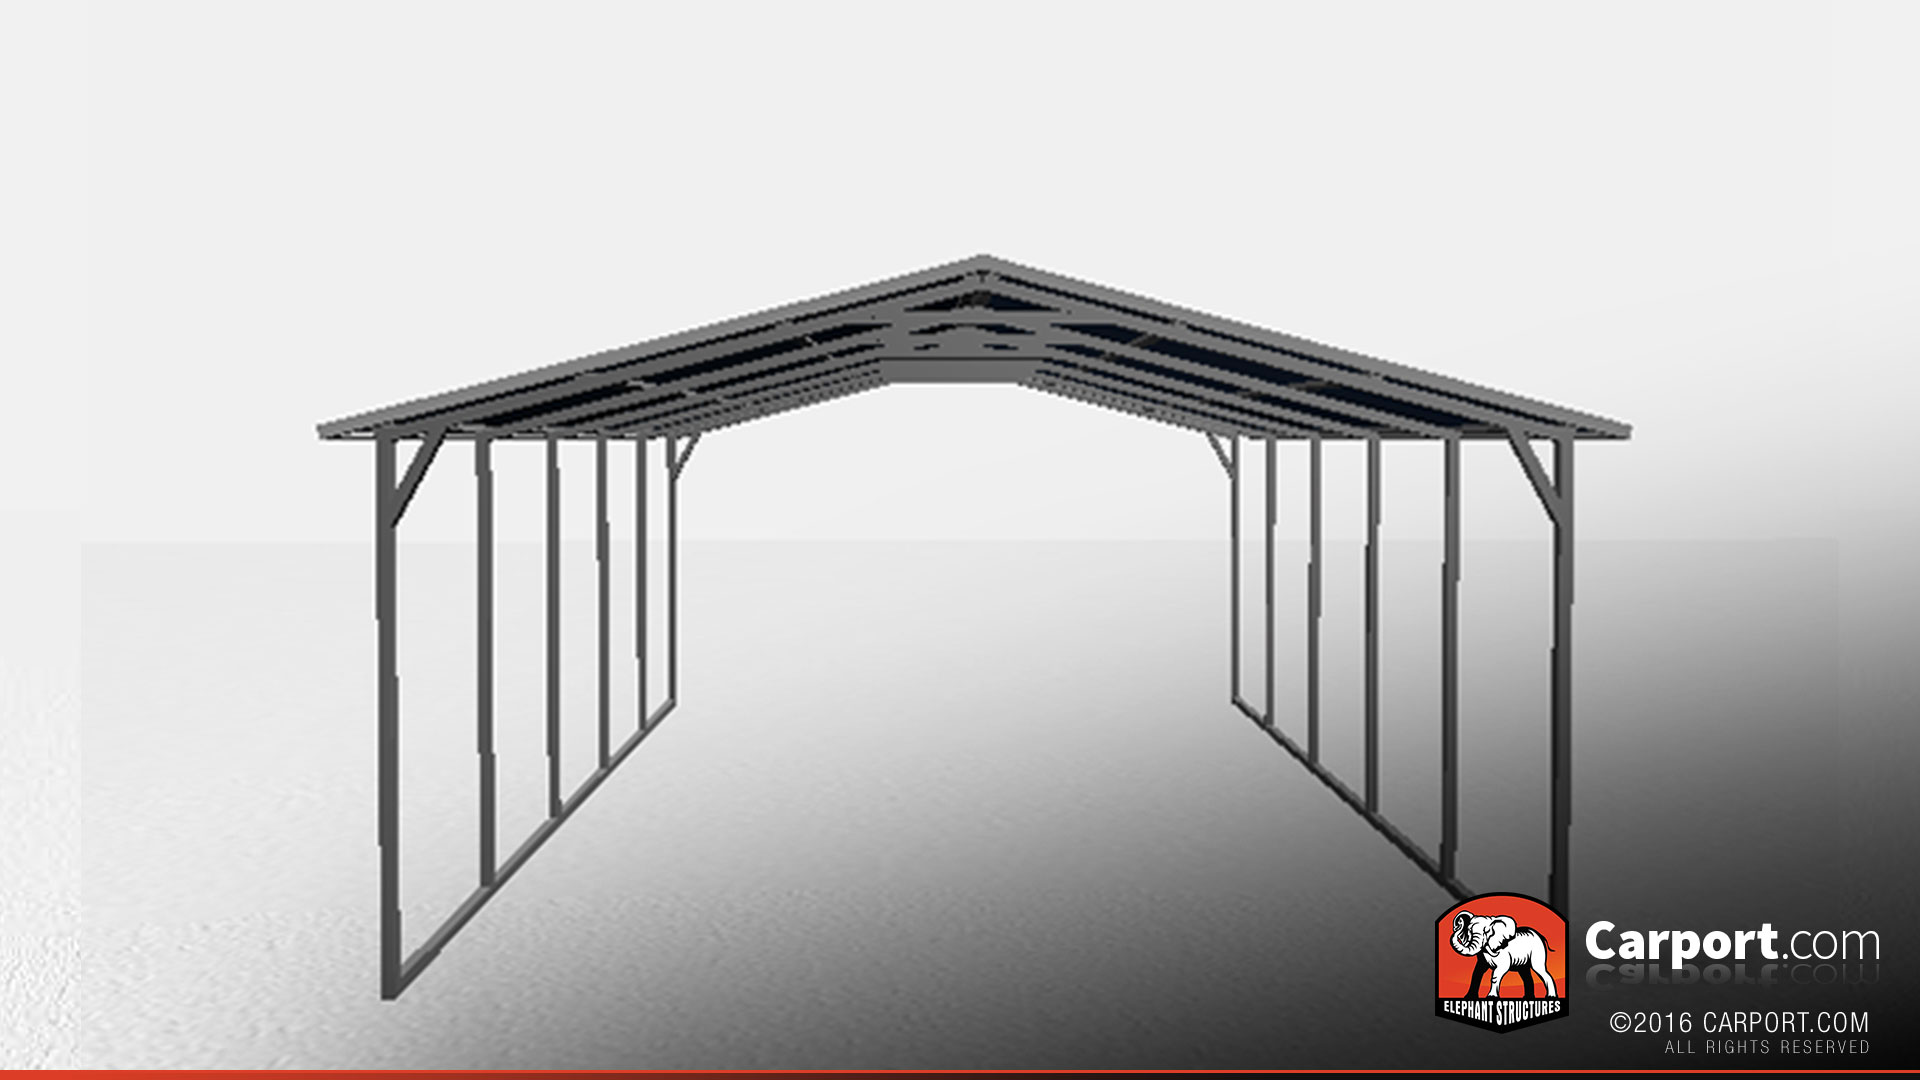 Vertical Roof Metal Carport : Vertical roof metal carport shelter